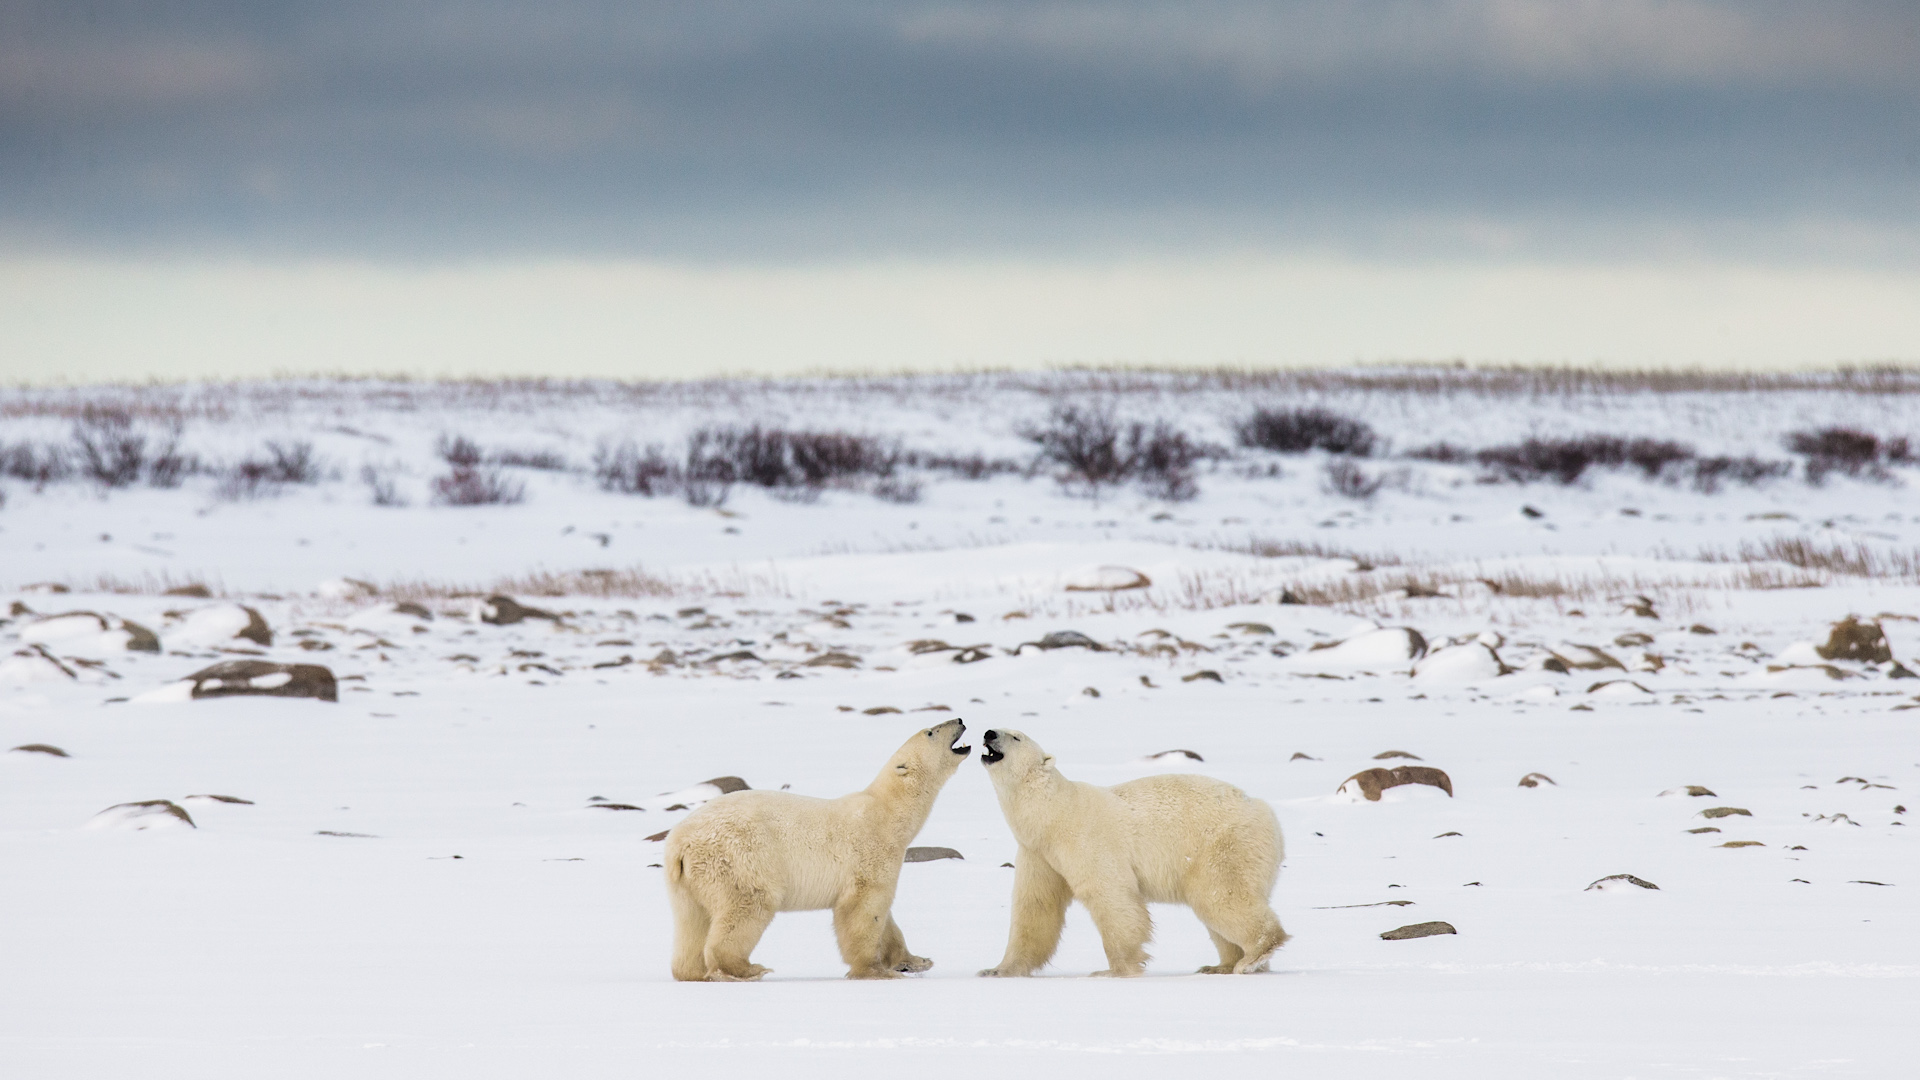 Polar bears on tundra, Arctic Canada